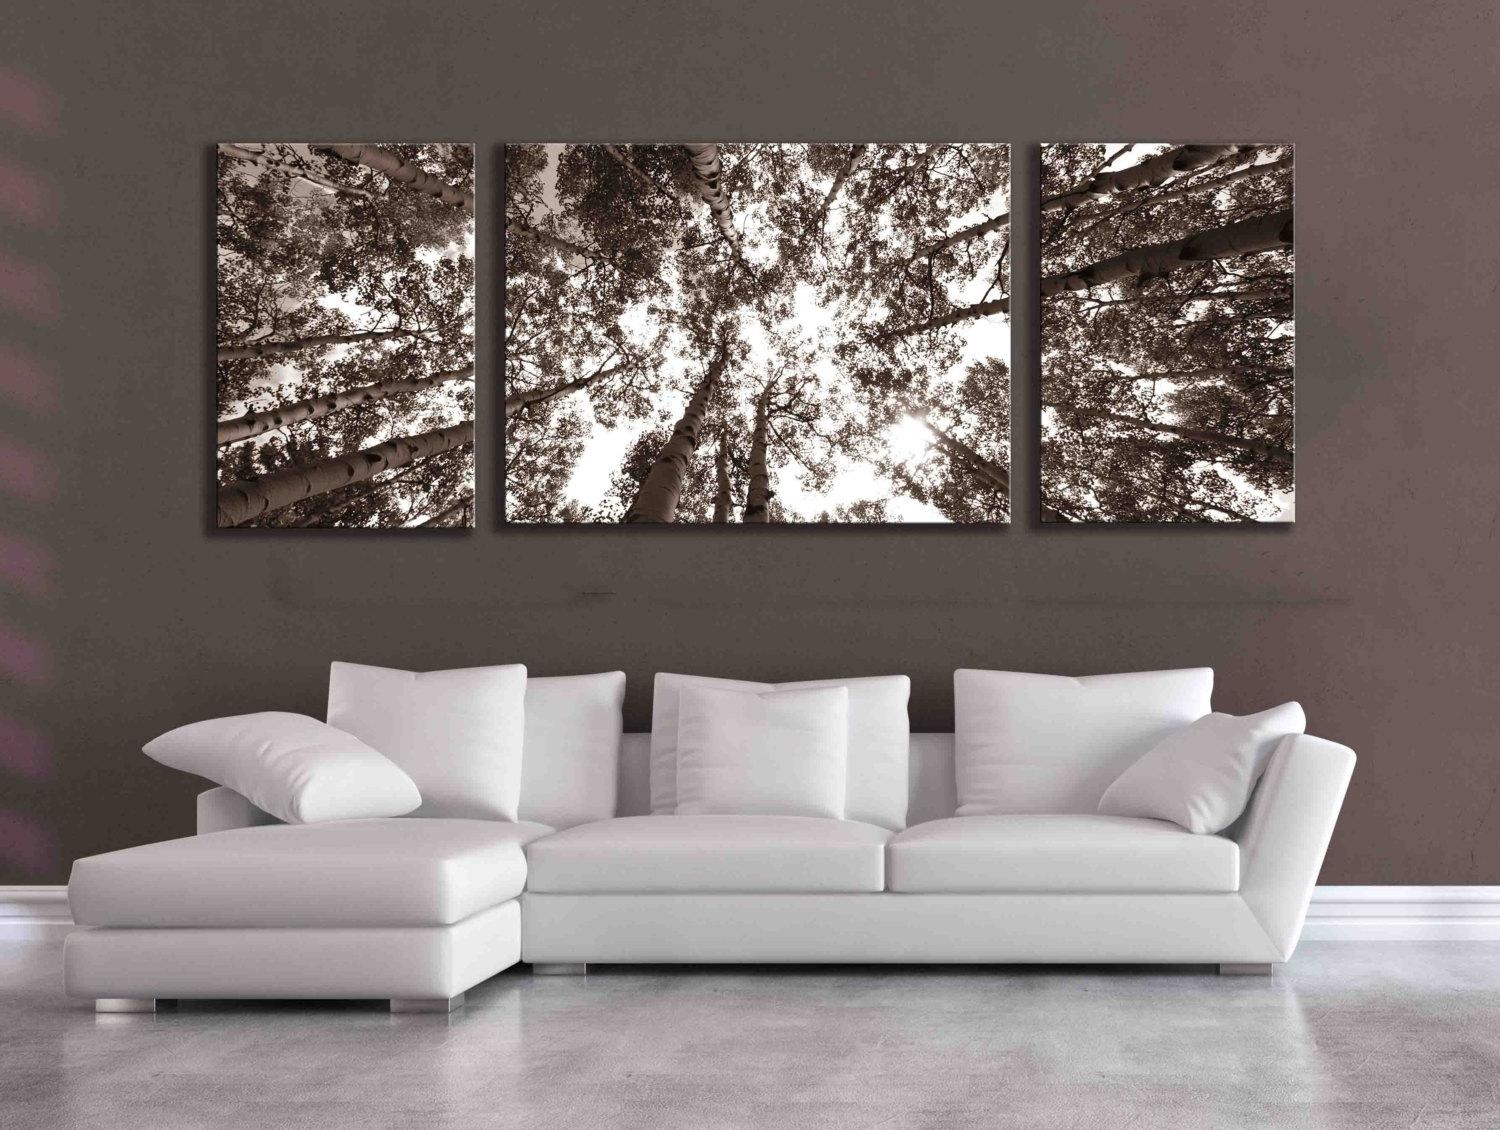 Large Sepia Three Panel Multi Piece Aspen Birch Tree Nature Regarding Multiple Piece Wall Art (Image 4 of 20)